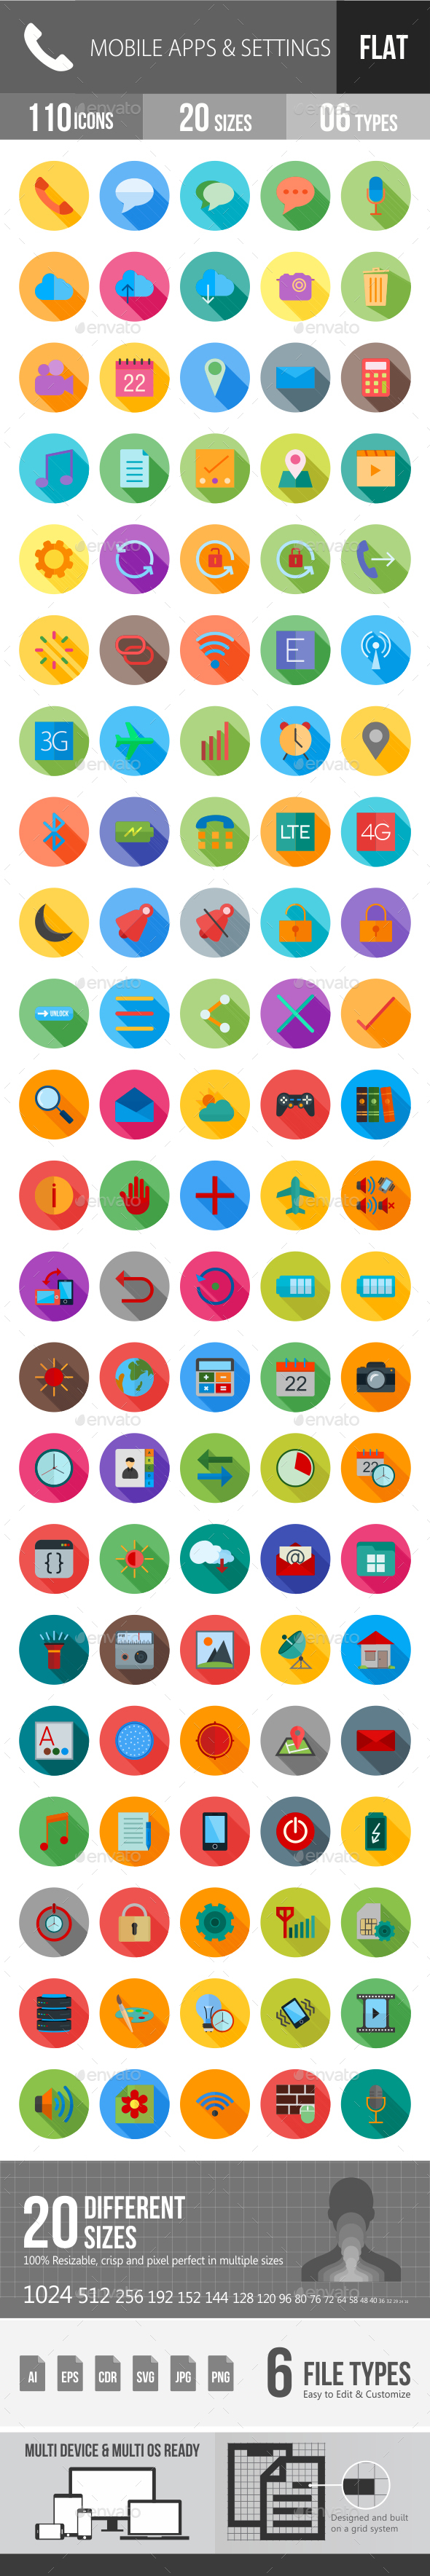 Mobile Apps & Settings Flat Shadowed Icons - Icons